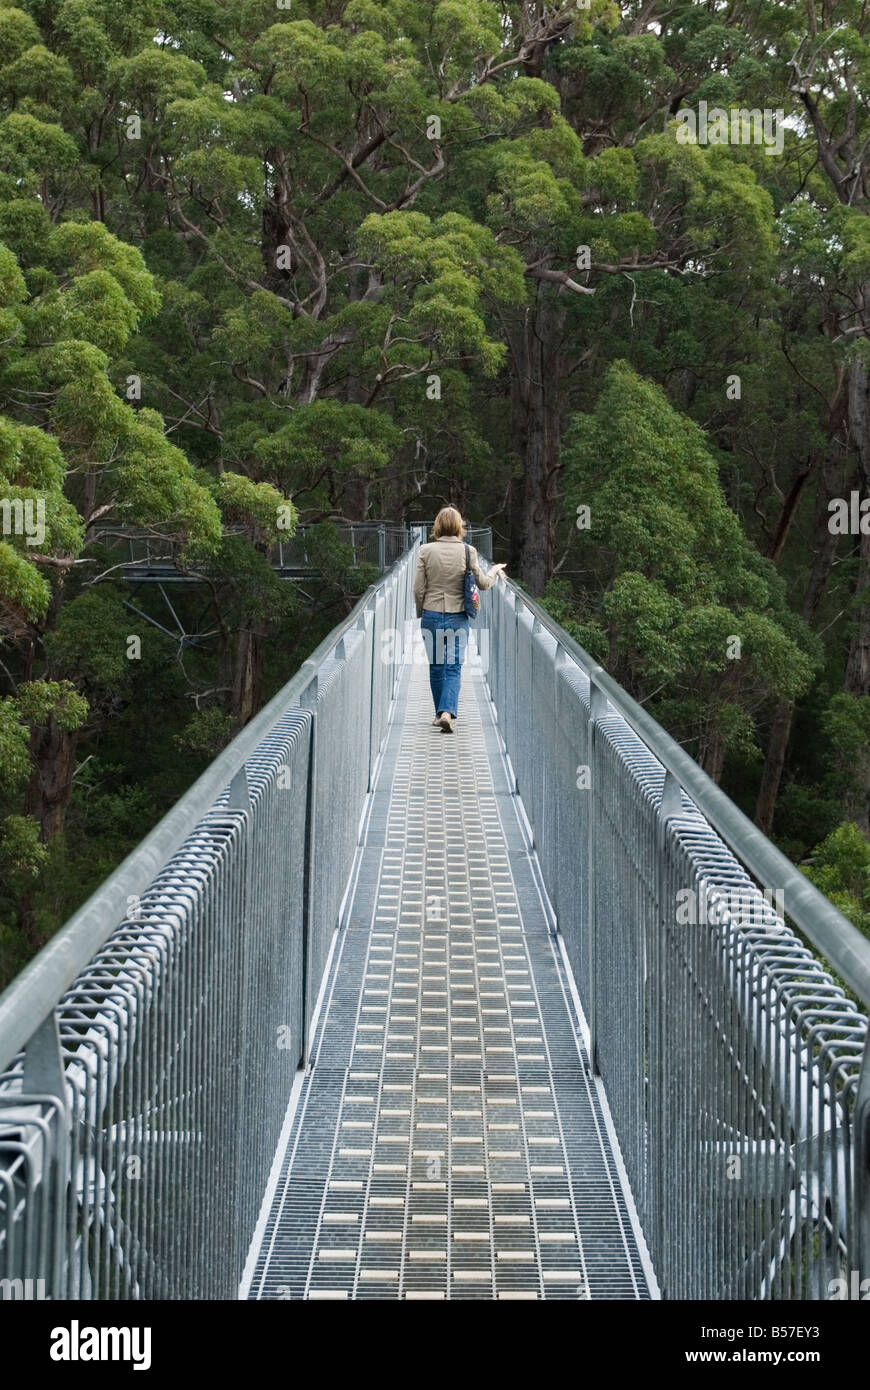 A woman walks along the Valley of the Giants Tree Top Walk walkway through the Red Tingle forest, Walpole Nornalup - Stock Image